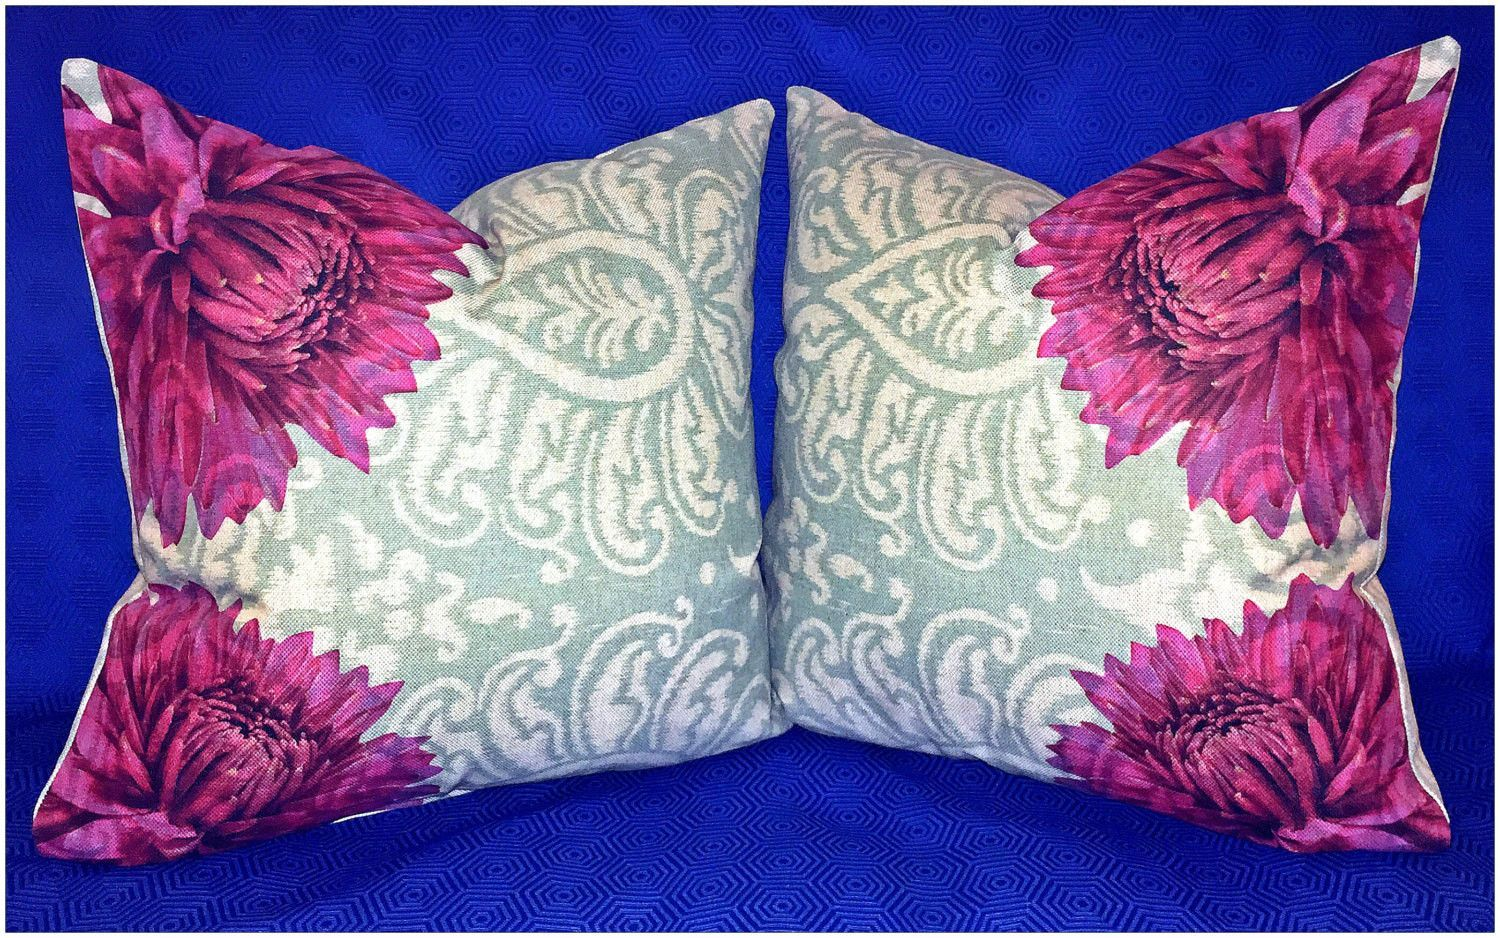 Large burgundy red dahlia decorative throw pillow cover, 22x22 inches on light blue and beige designer tapestry fabric